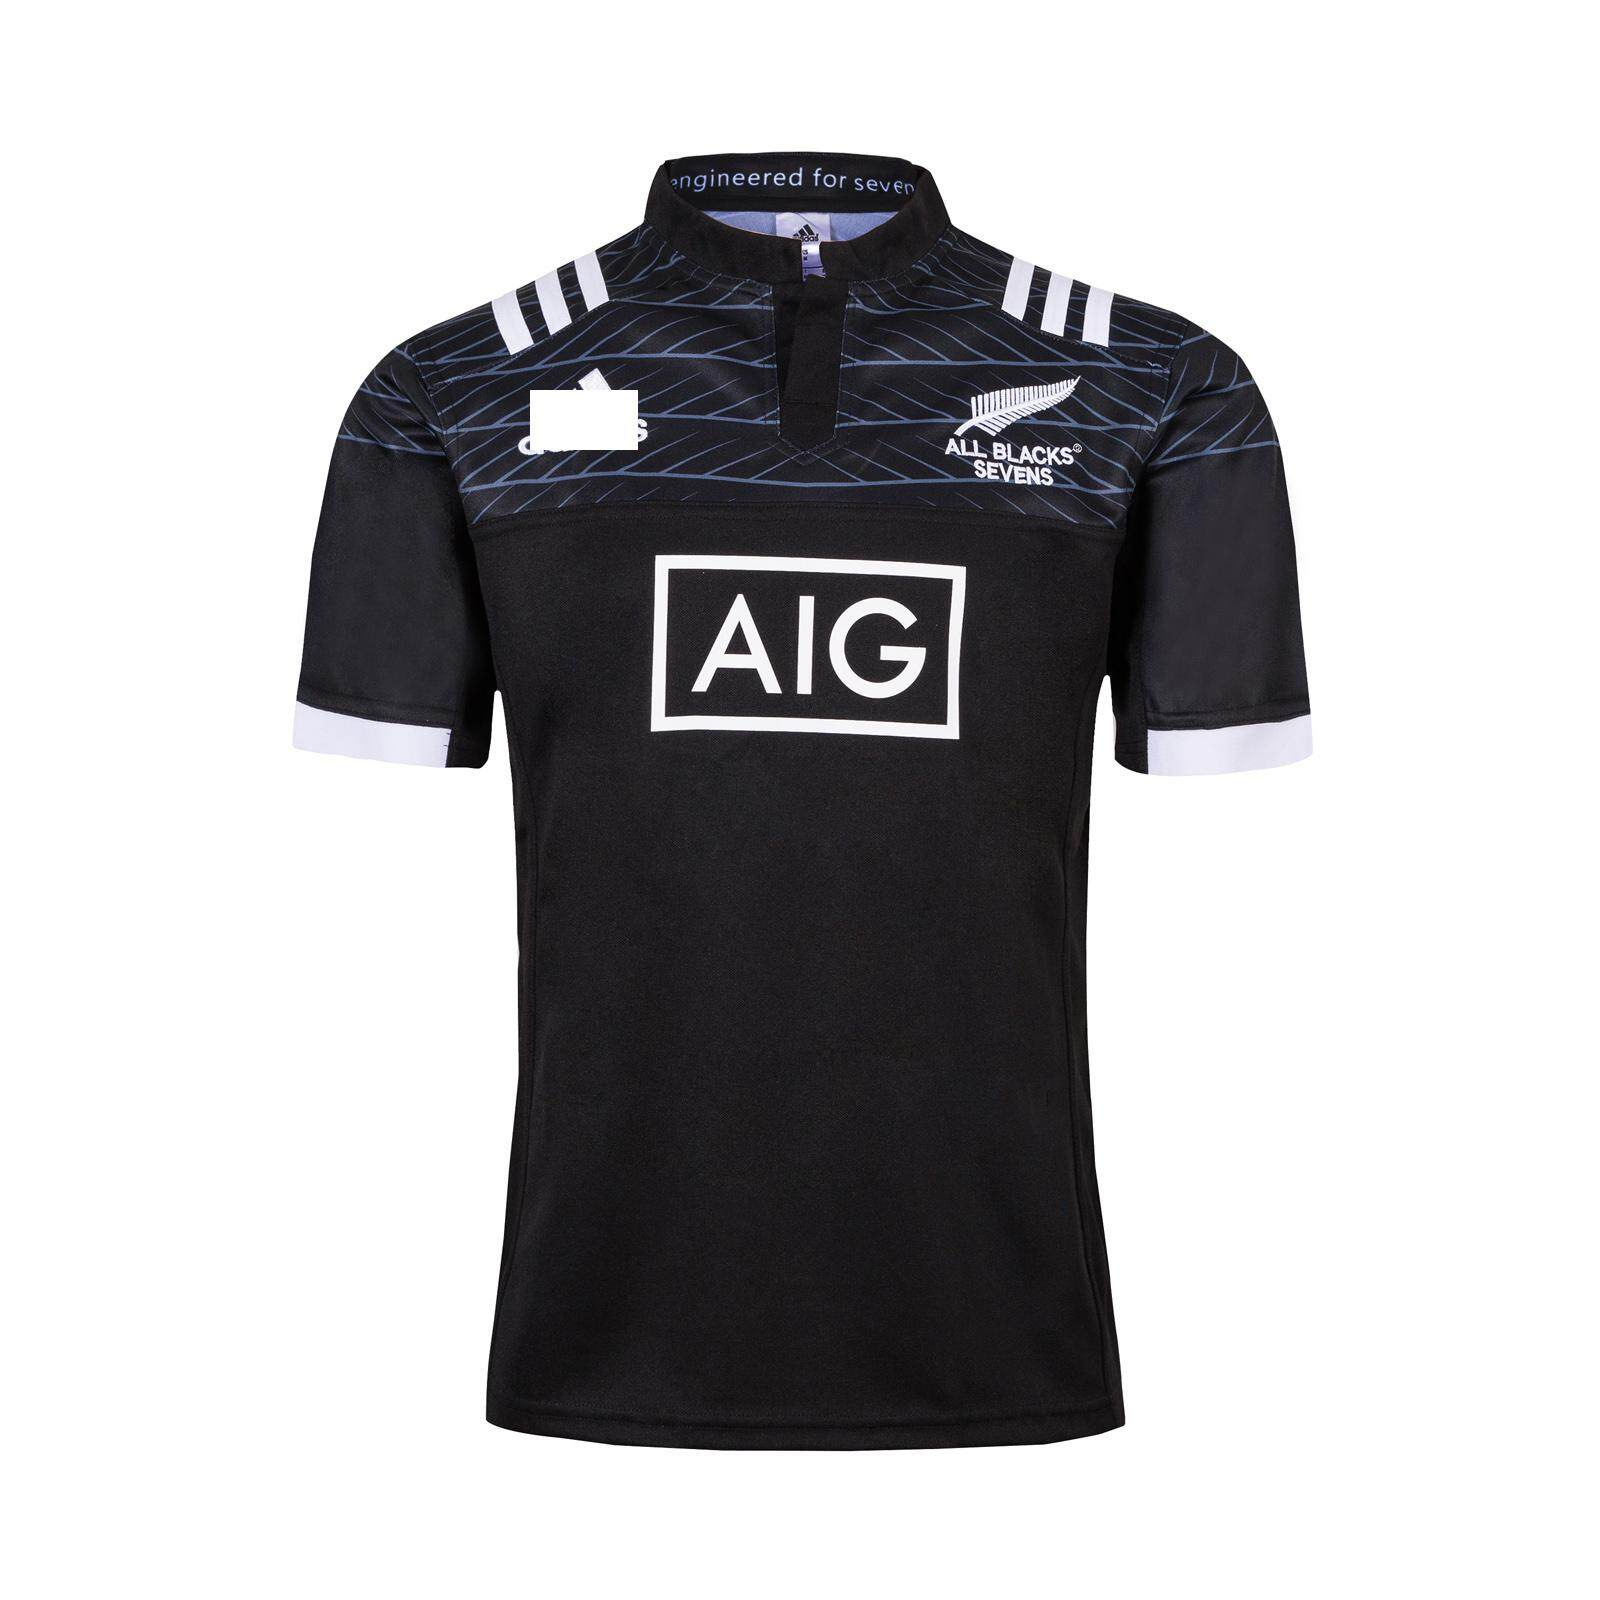 d5d9bcbf5f1 New Zealand 2018/19 All Blacks 7' Home Rugby Shirt All Blacks Rugby Jersey